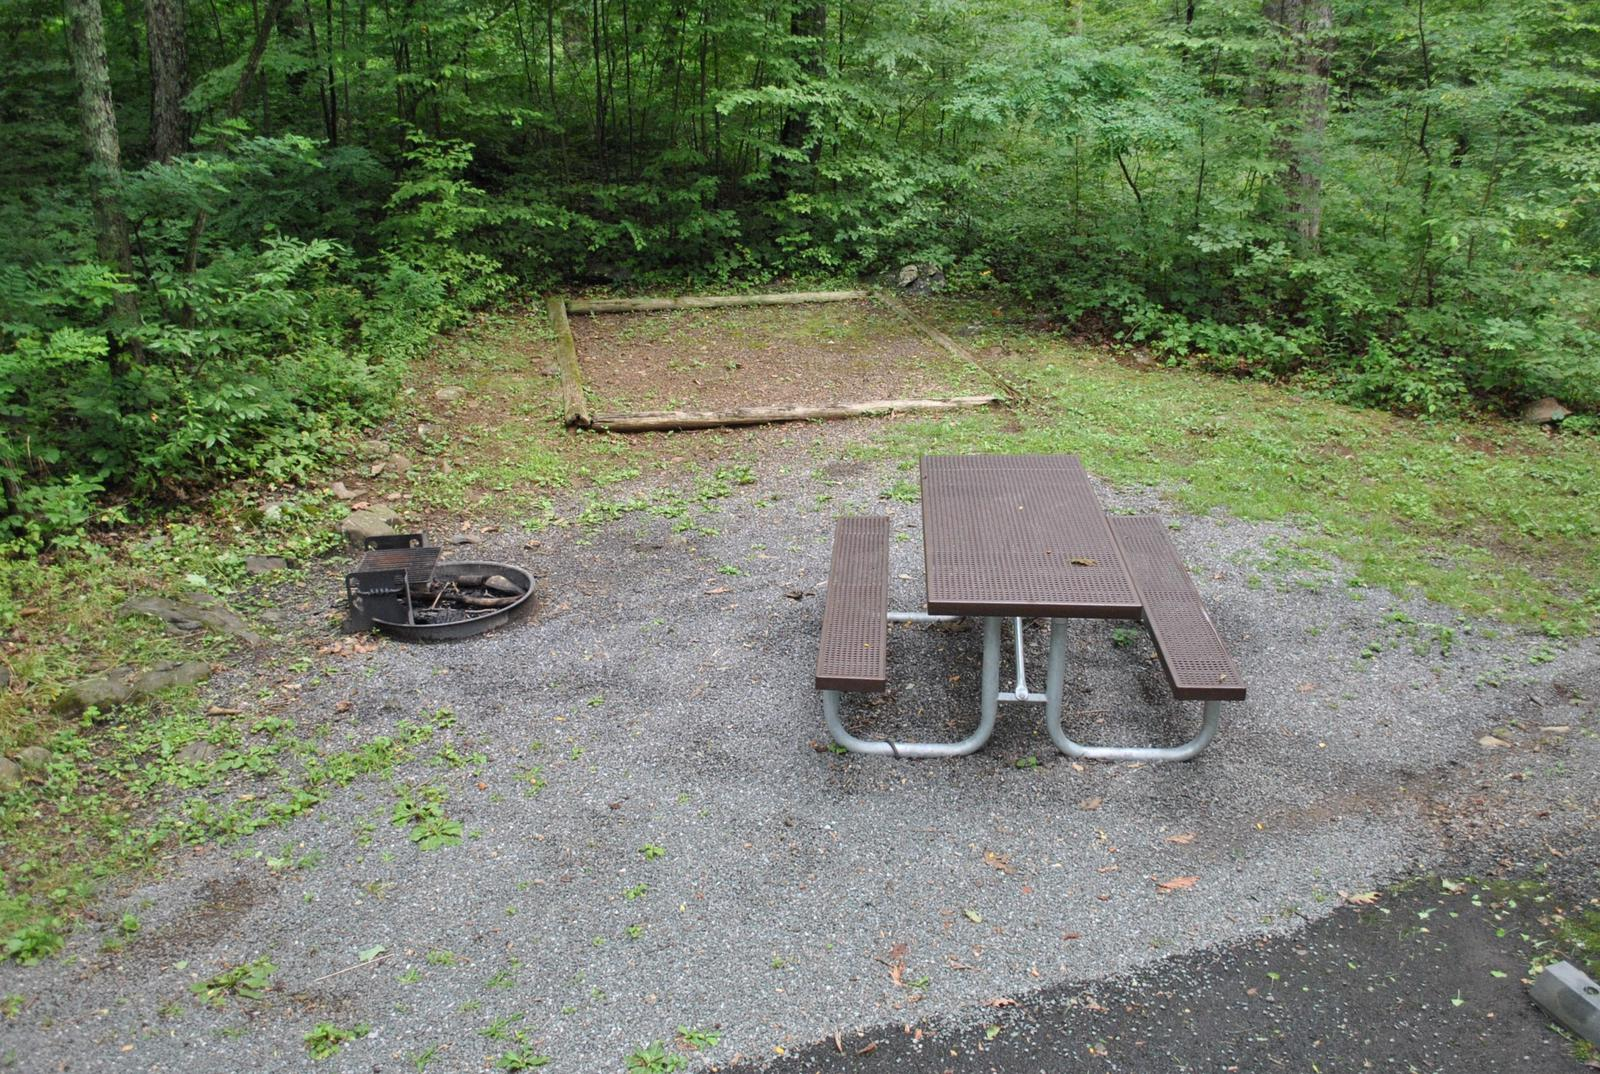 Mathews Arm Campground – Site A021